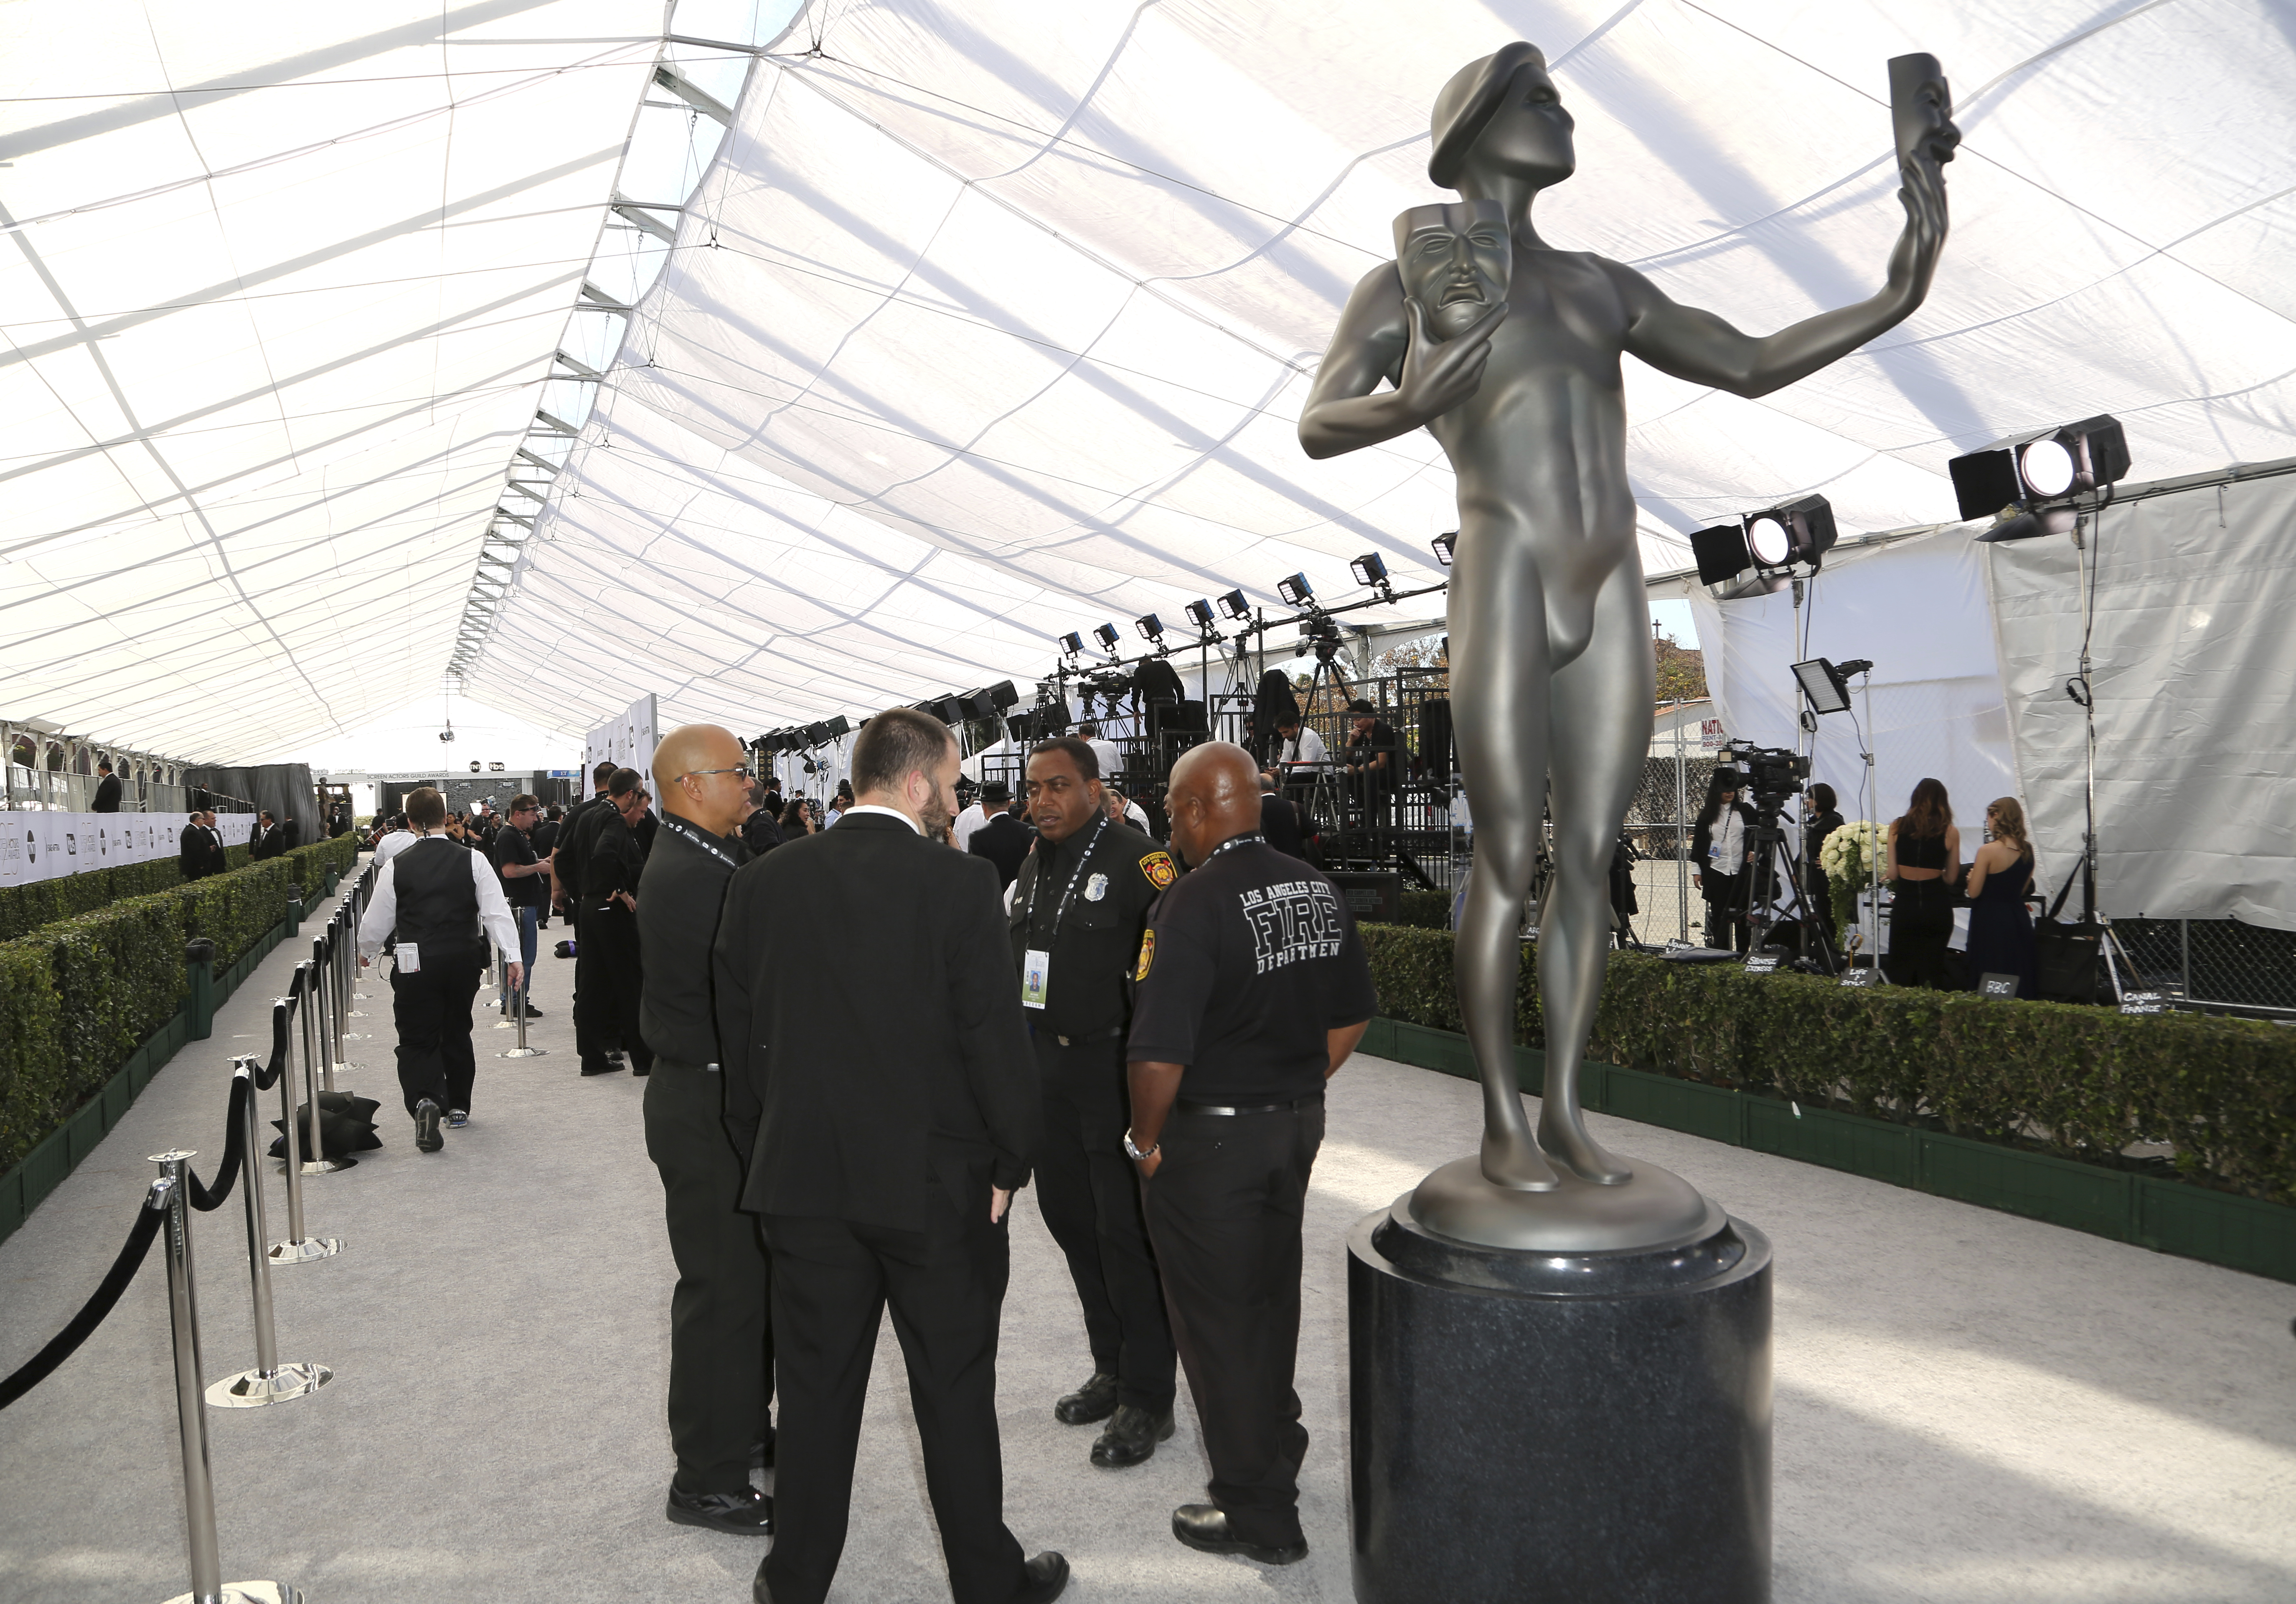 Security gathers around an Actor statue on the red carpet at the 25th annual Screen Actors Guild Awards at the Shrine Auditorium & Expo Hall on Sunday, Jan. 27, 2019, in Los Angeles. (Photo by Willy Sanjuan/Invision/AP)